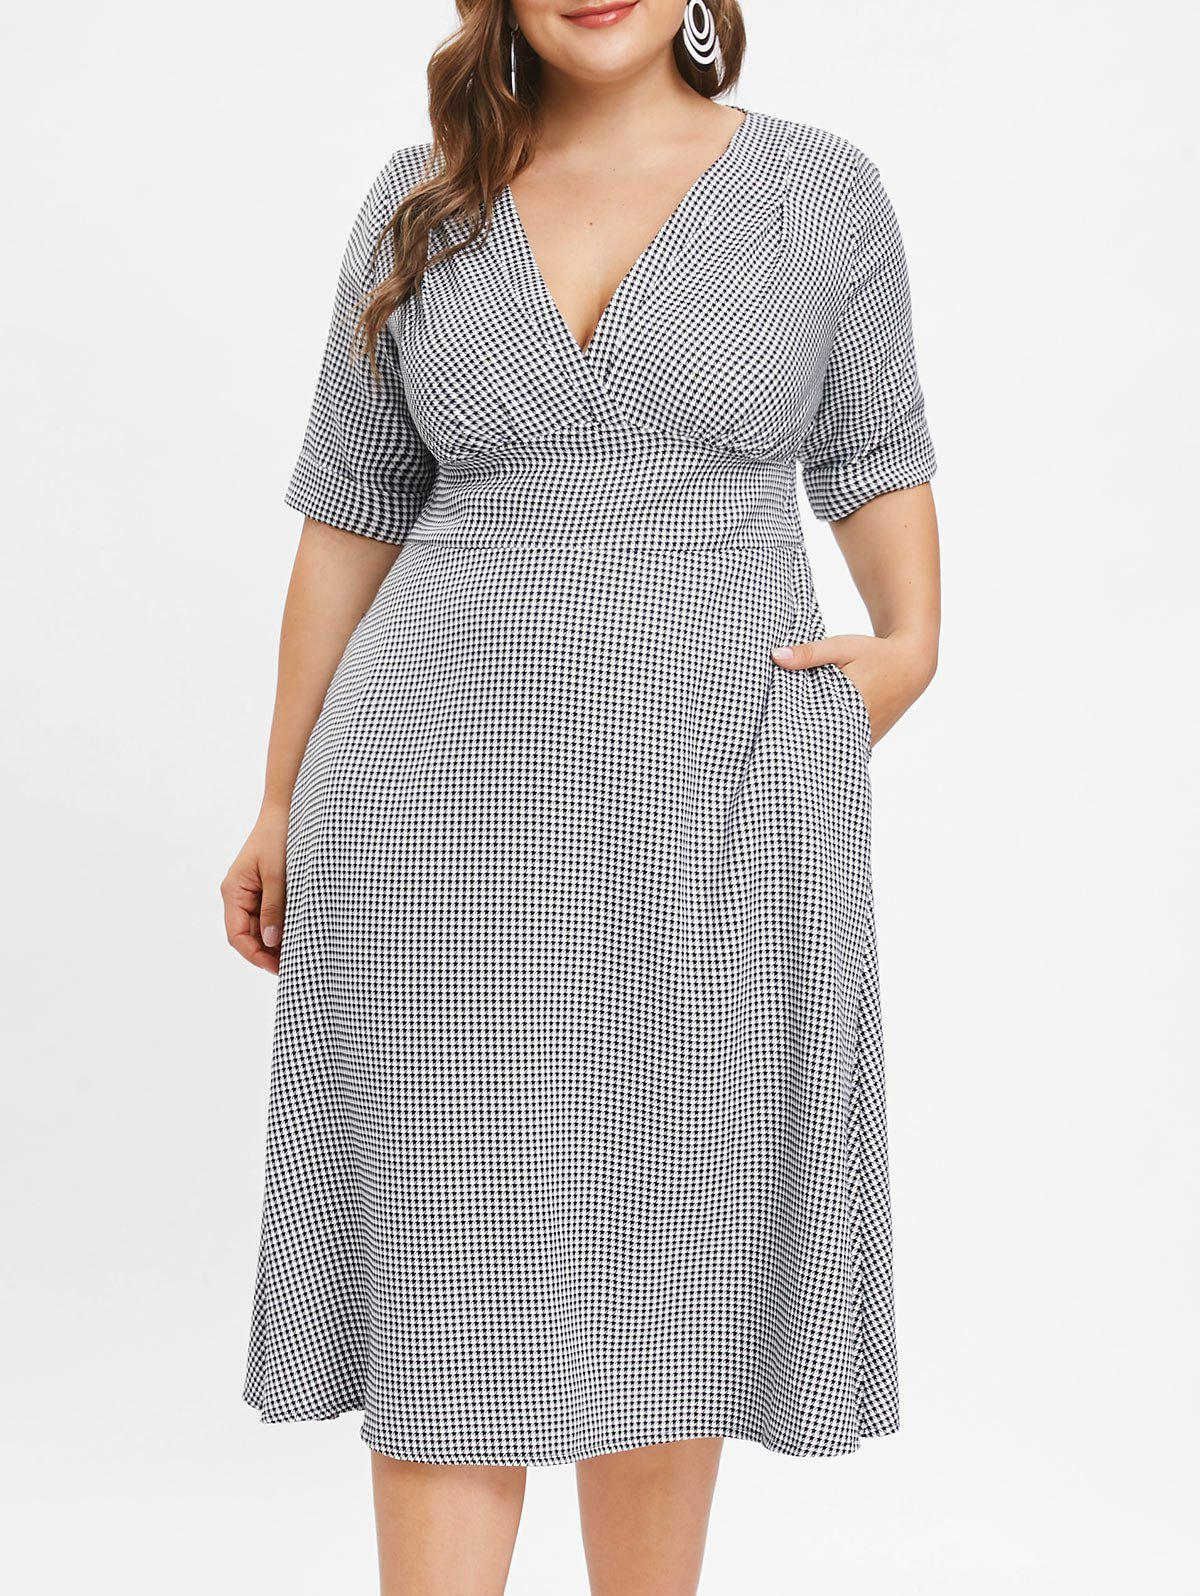 Plunge Houndstooth Print Plus Size A Line Dress - BLACK 3X